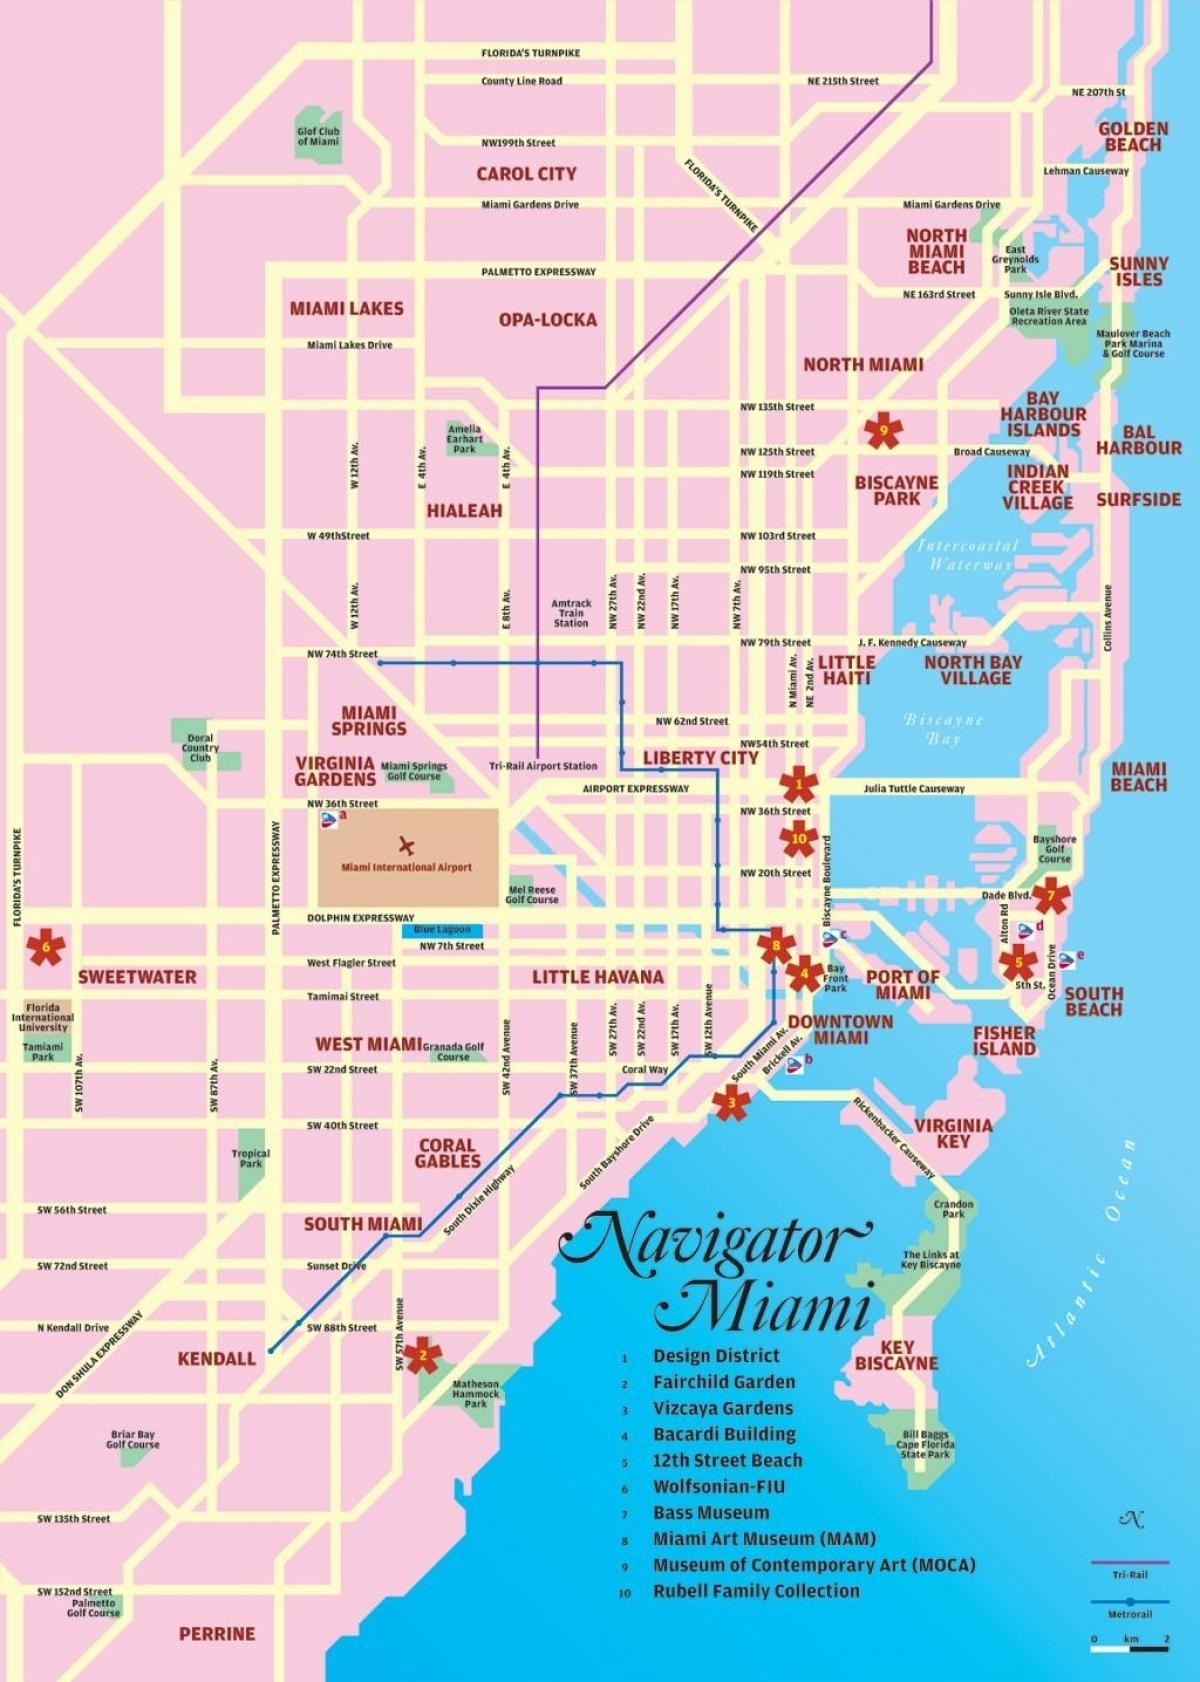 Miami Mapa Turístico - Mapa Turístico De Miami (Florida - Usa) with regard to Miami Beach Mapa Turistico